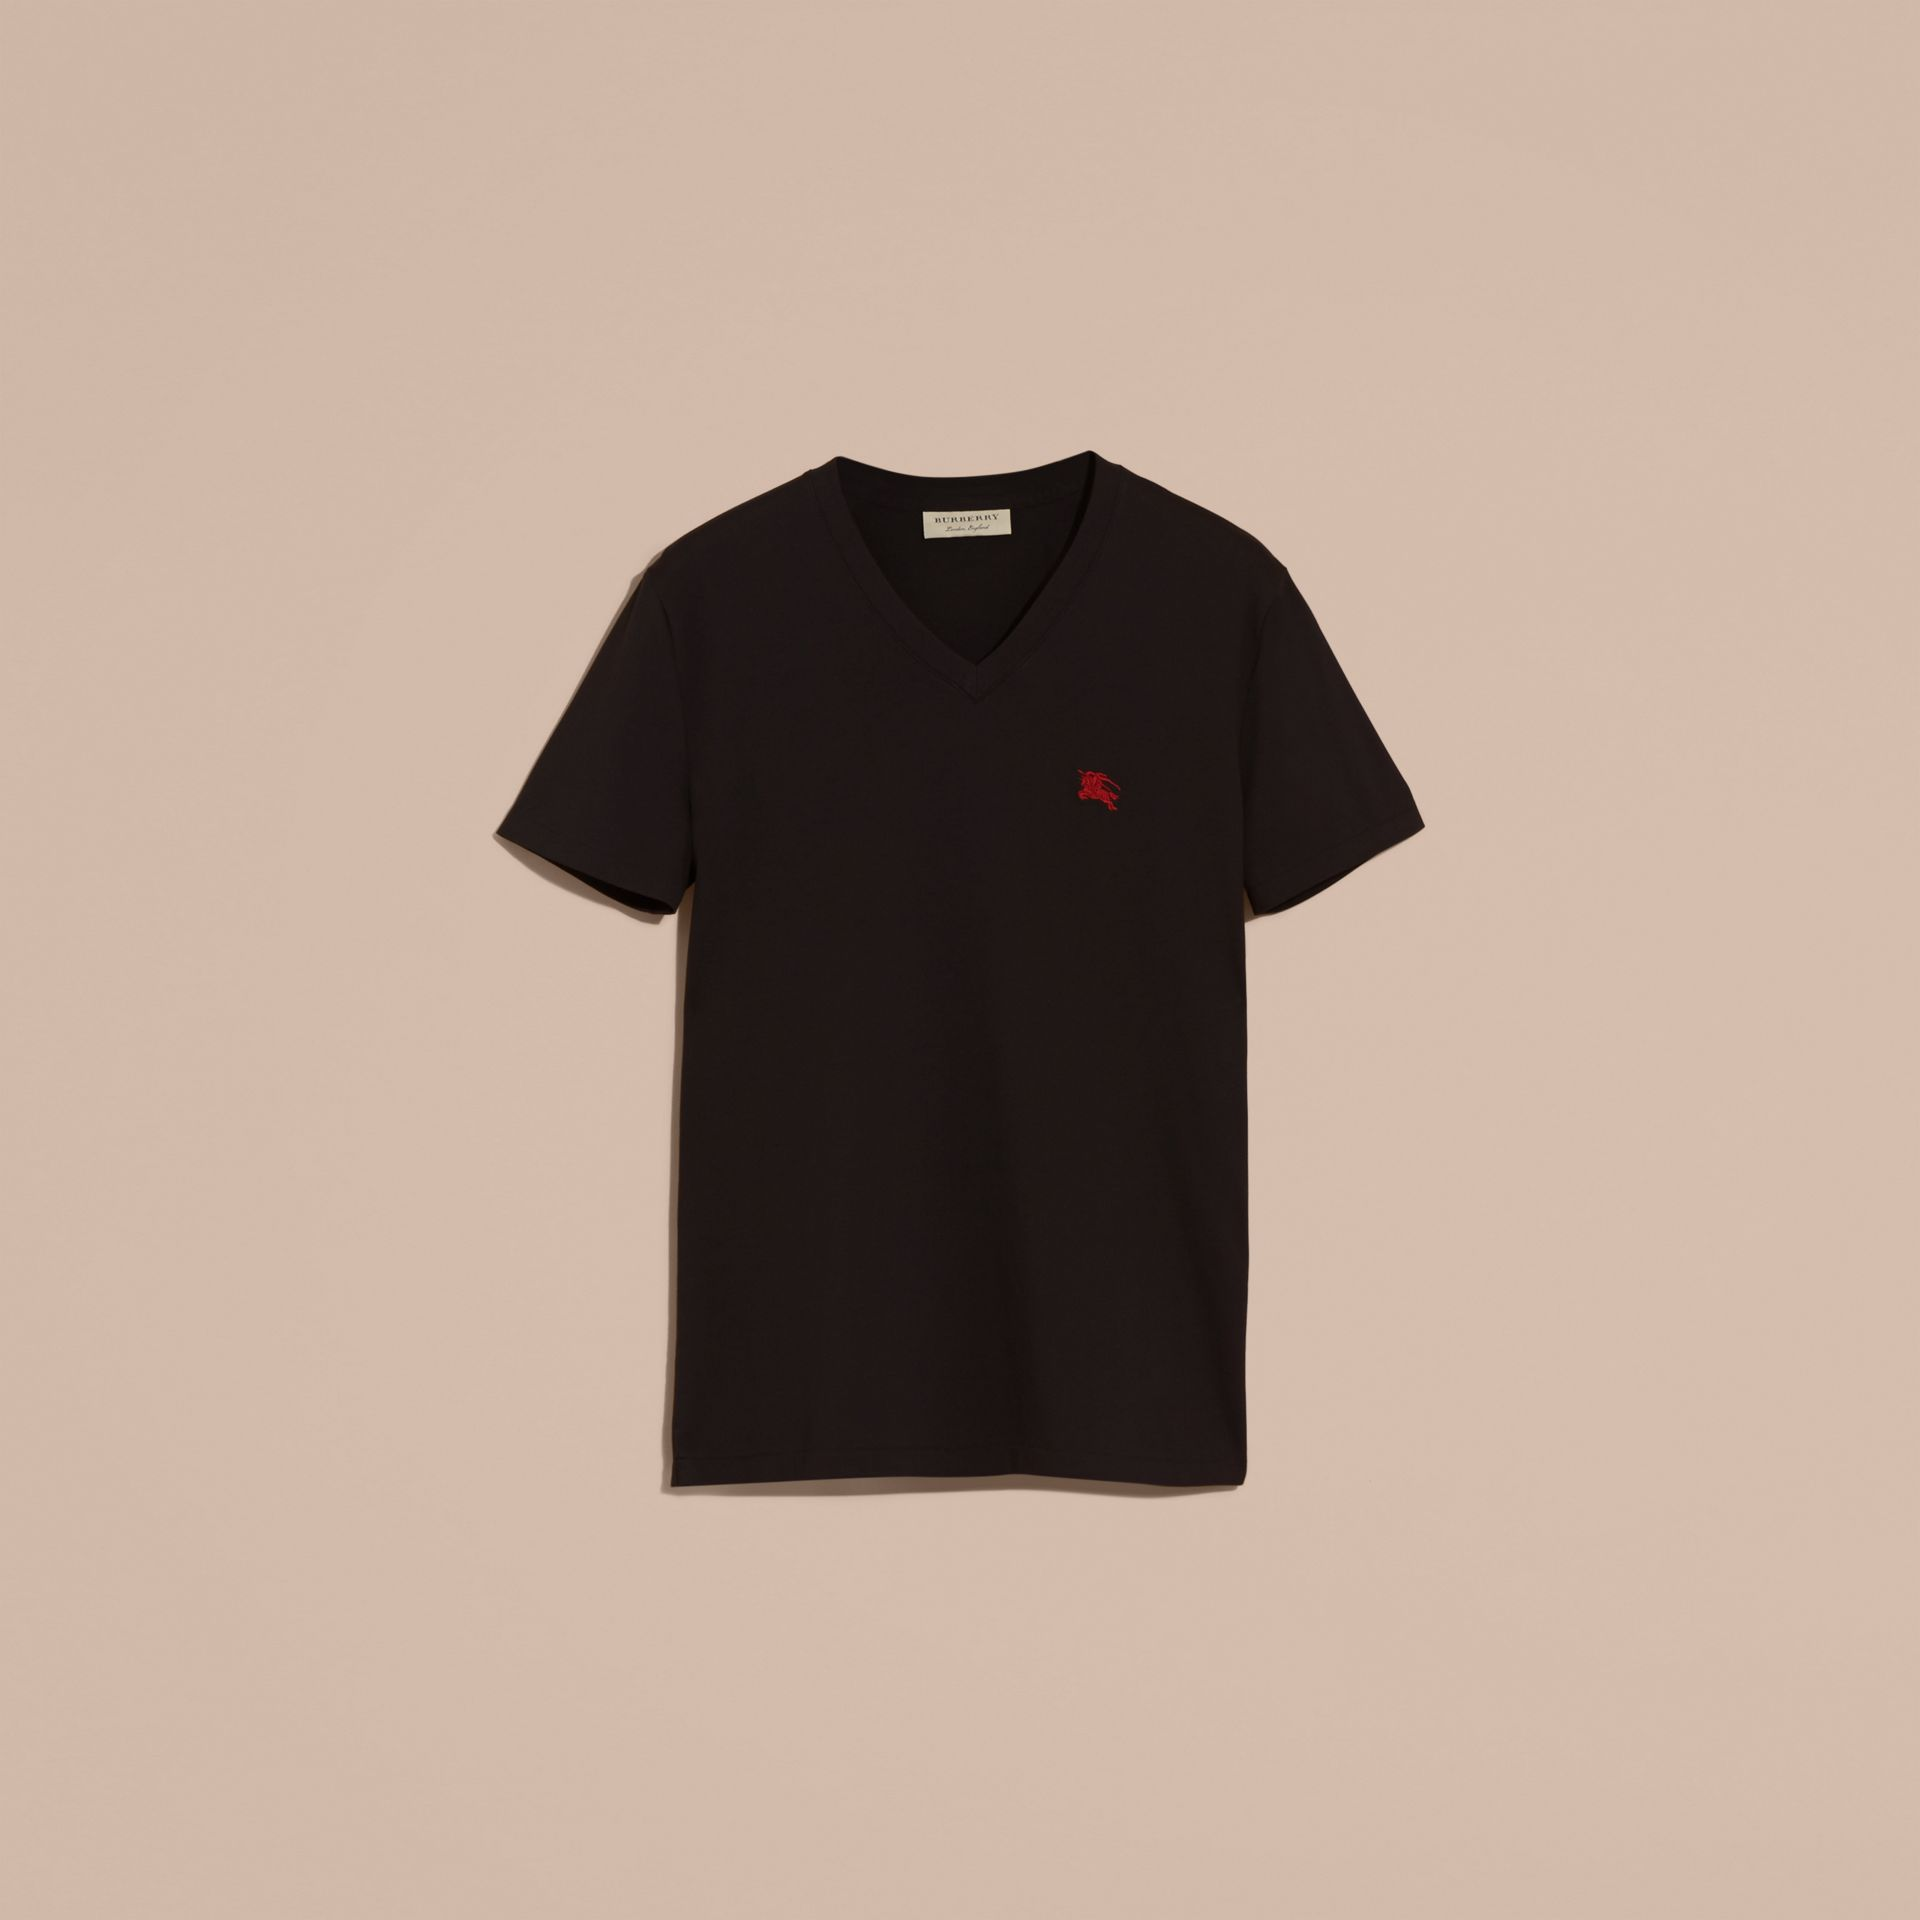 Cotton V-neck T-shirt in Black - Men | Burberry Canada - gallery image 4